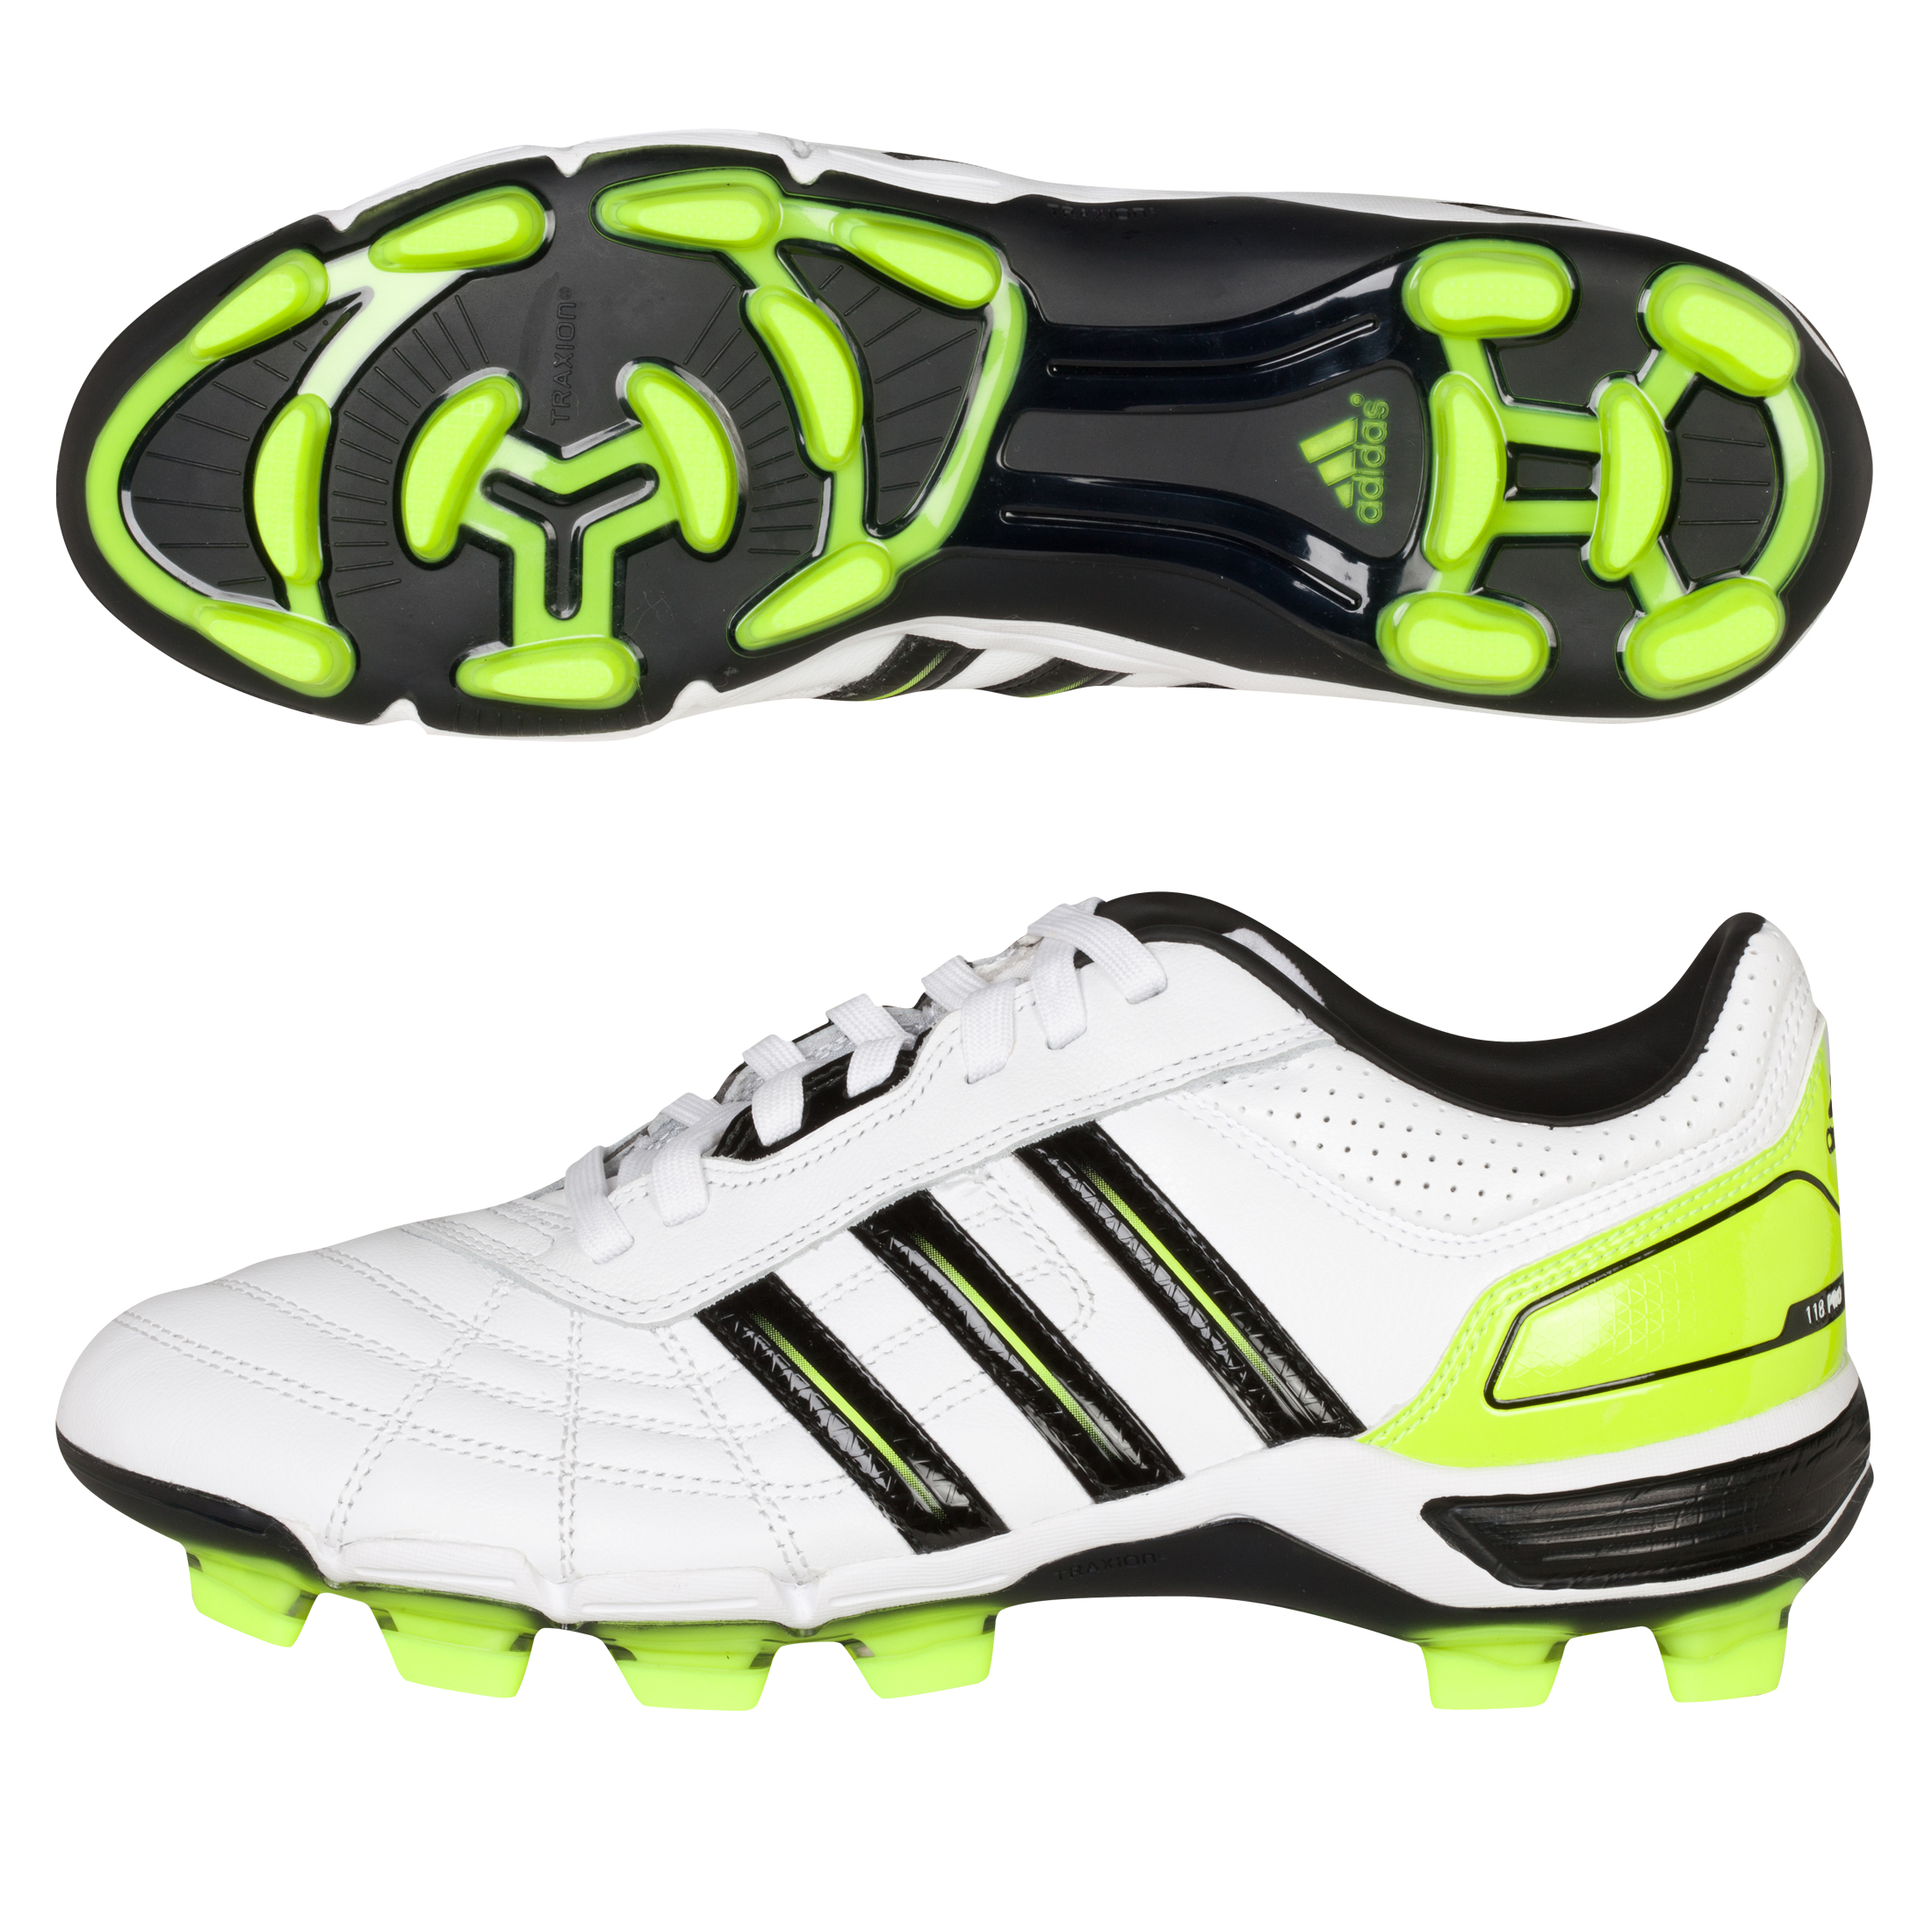 Adidas 118 Pro Rugby Boot - White / Black